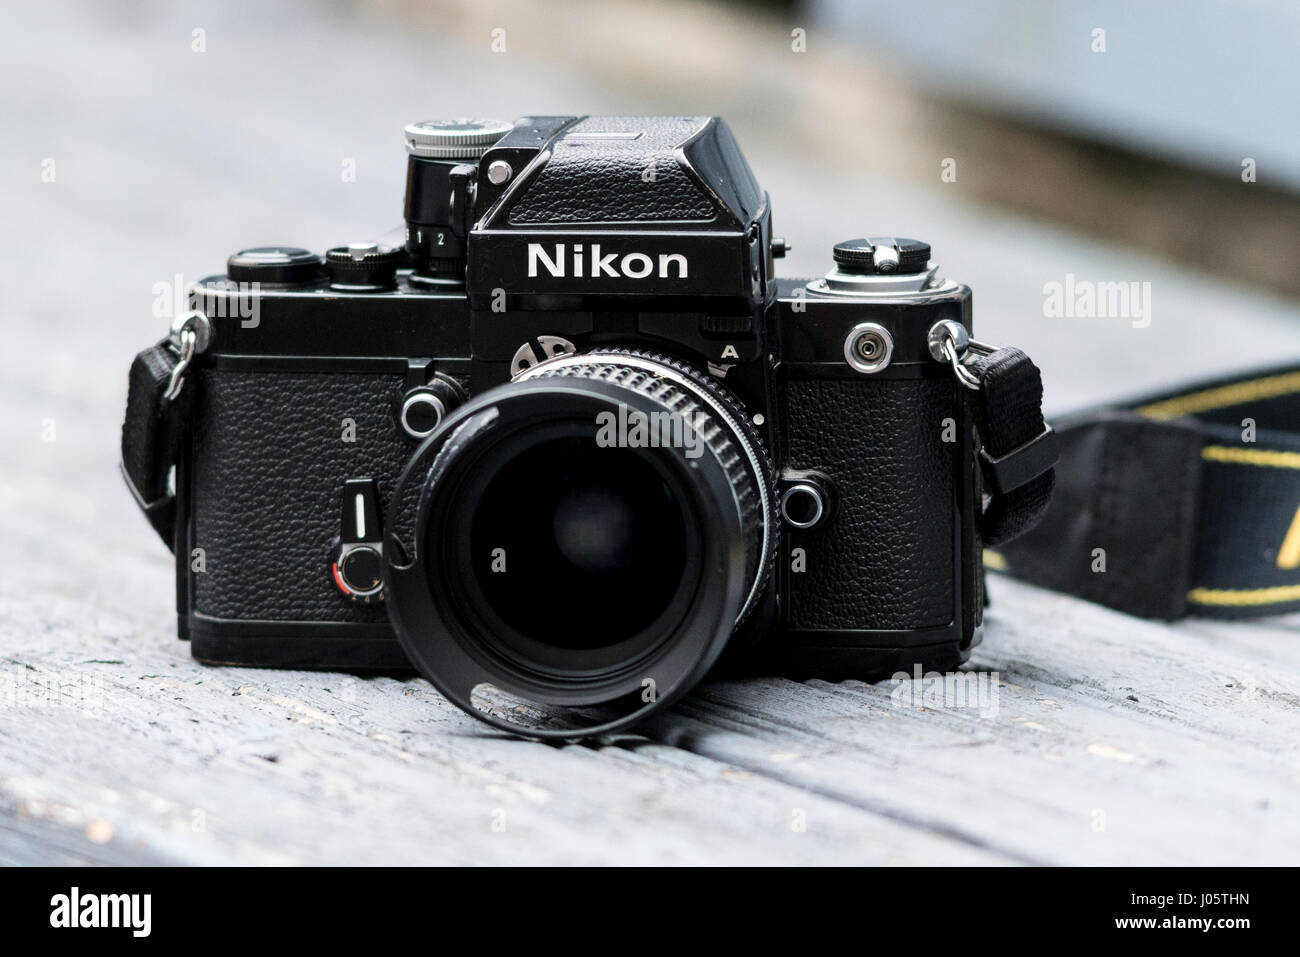 Nikon F2a Single Lens Reflex 35mm Film Camera, First released in 1971. - Stock Image